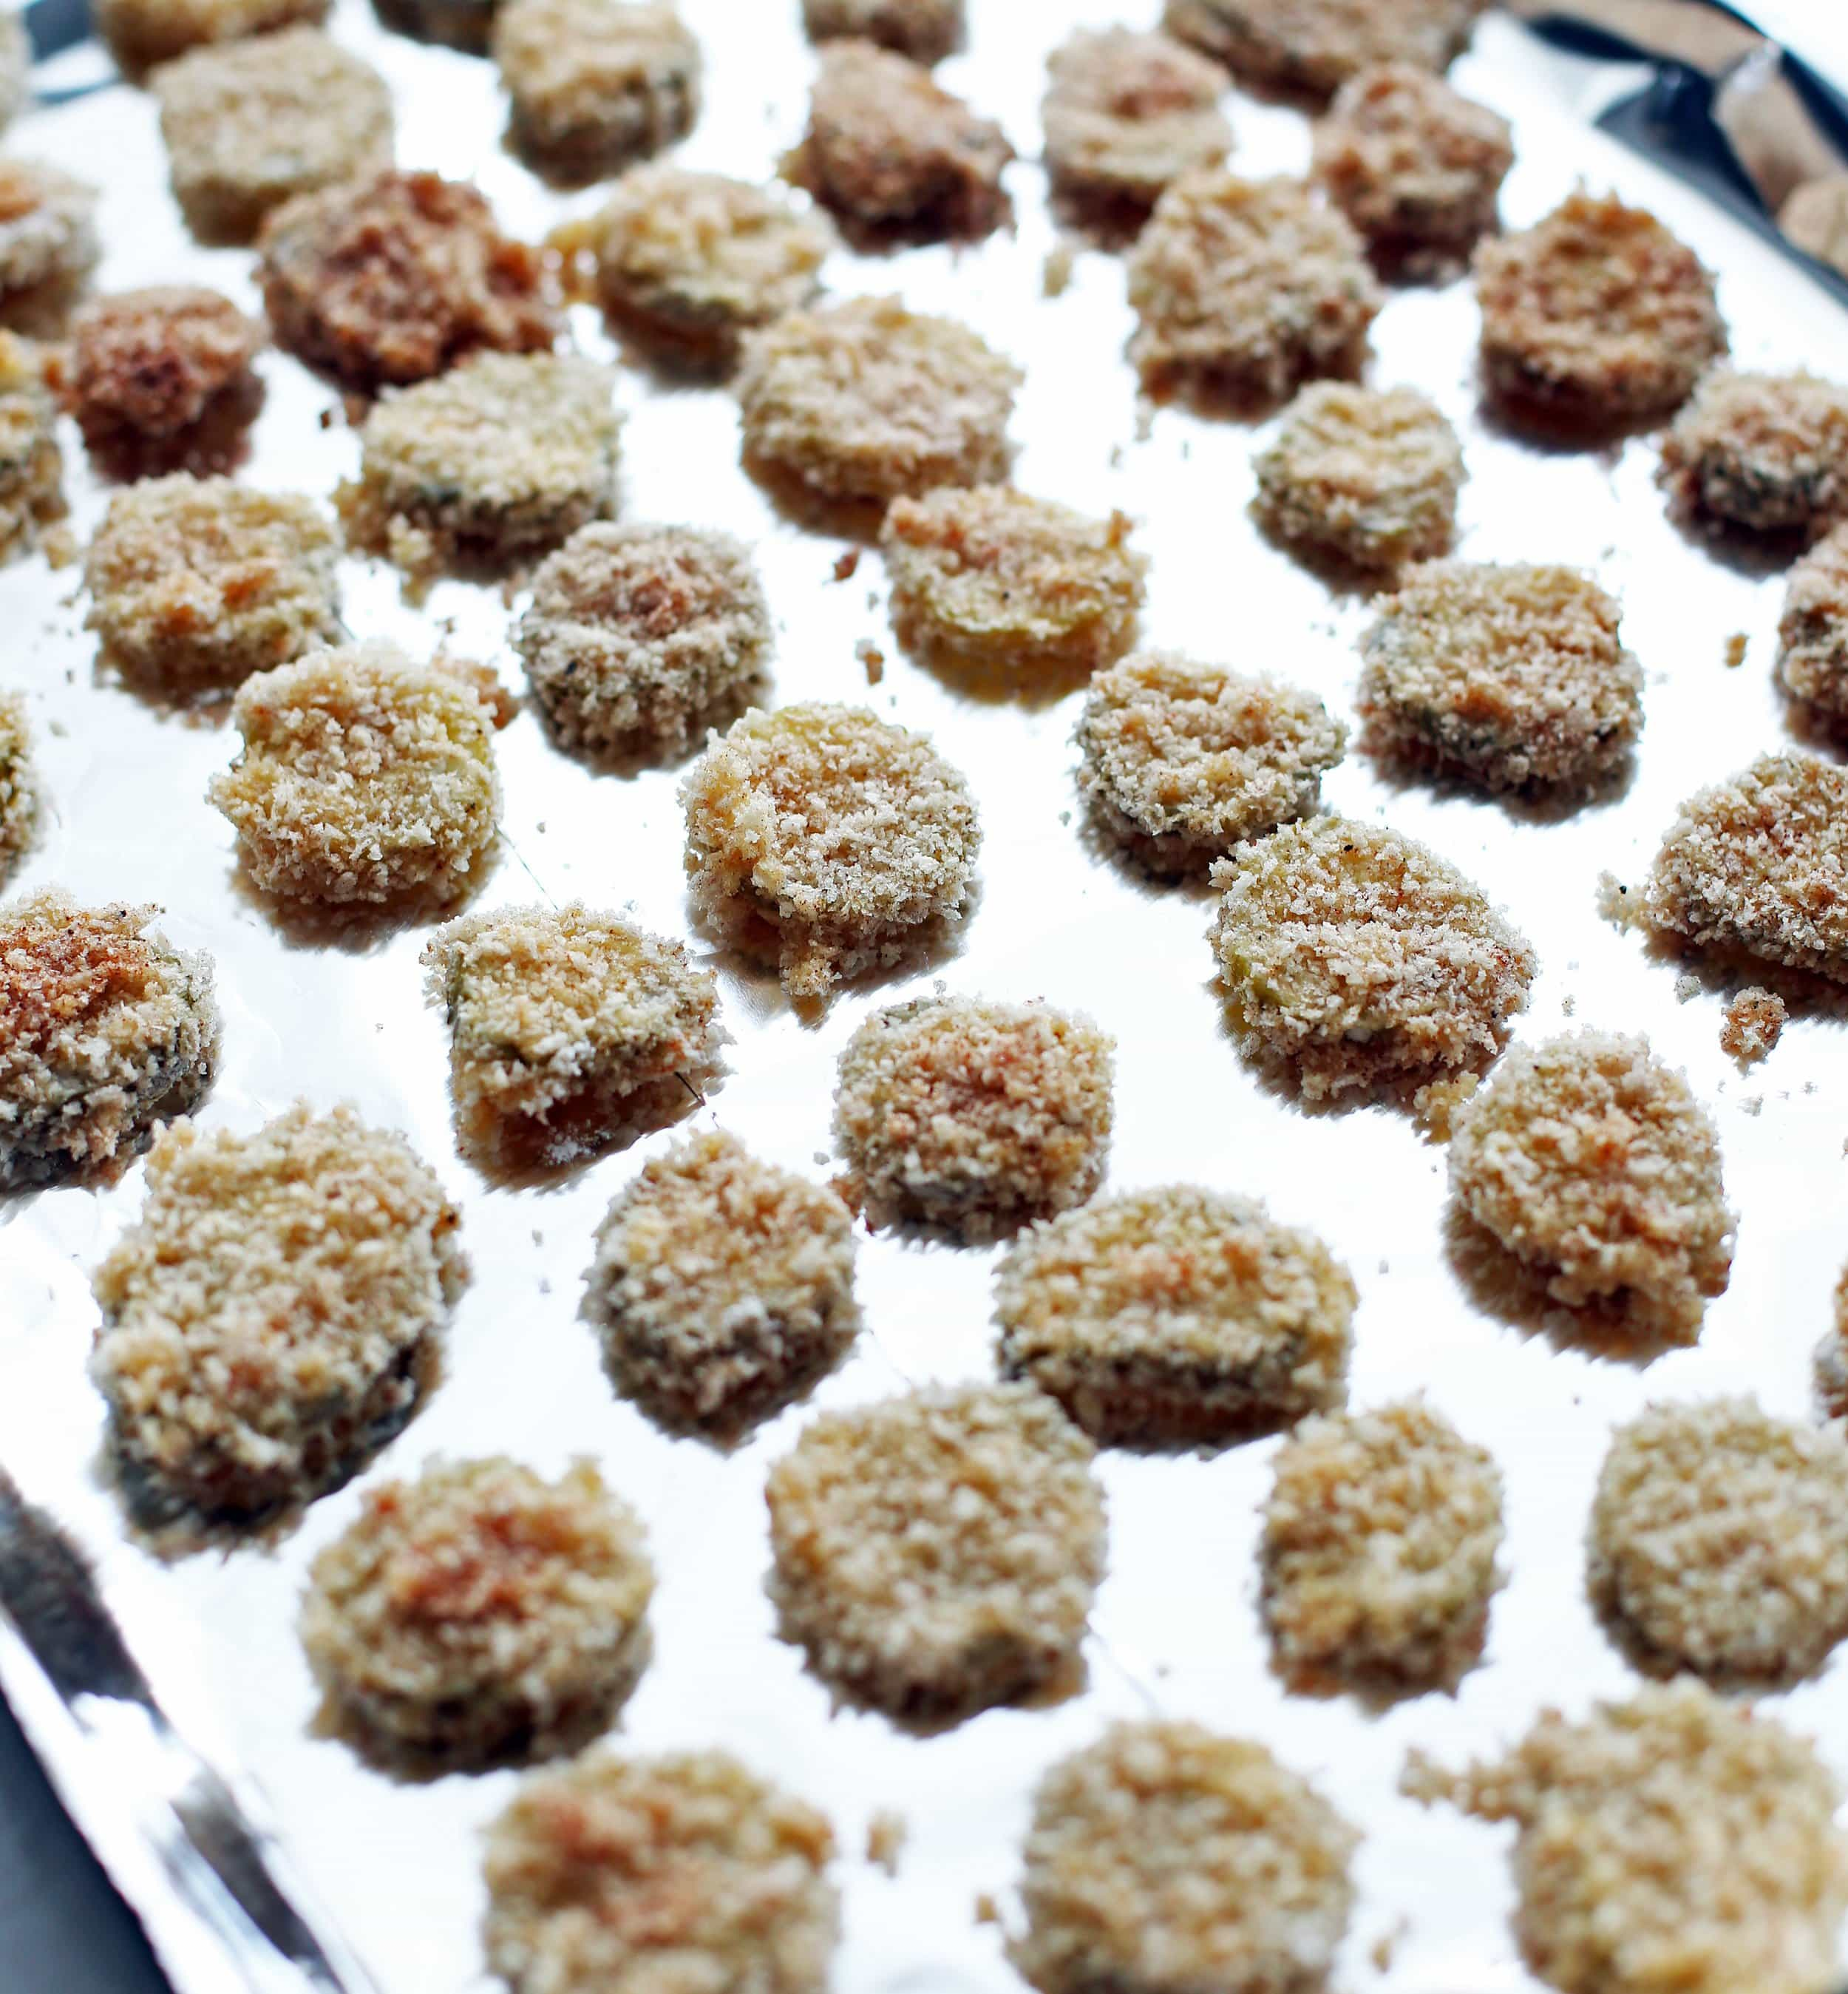 Dredged panko breadcrumb covered pickle slices placed on an aluminum foil lined baking sheet.